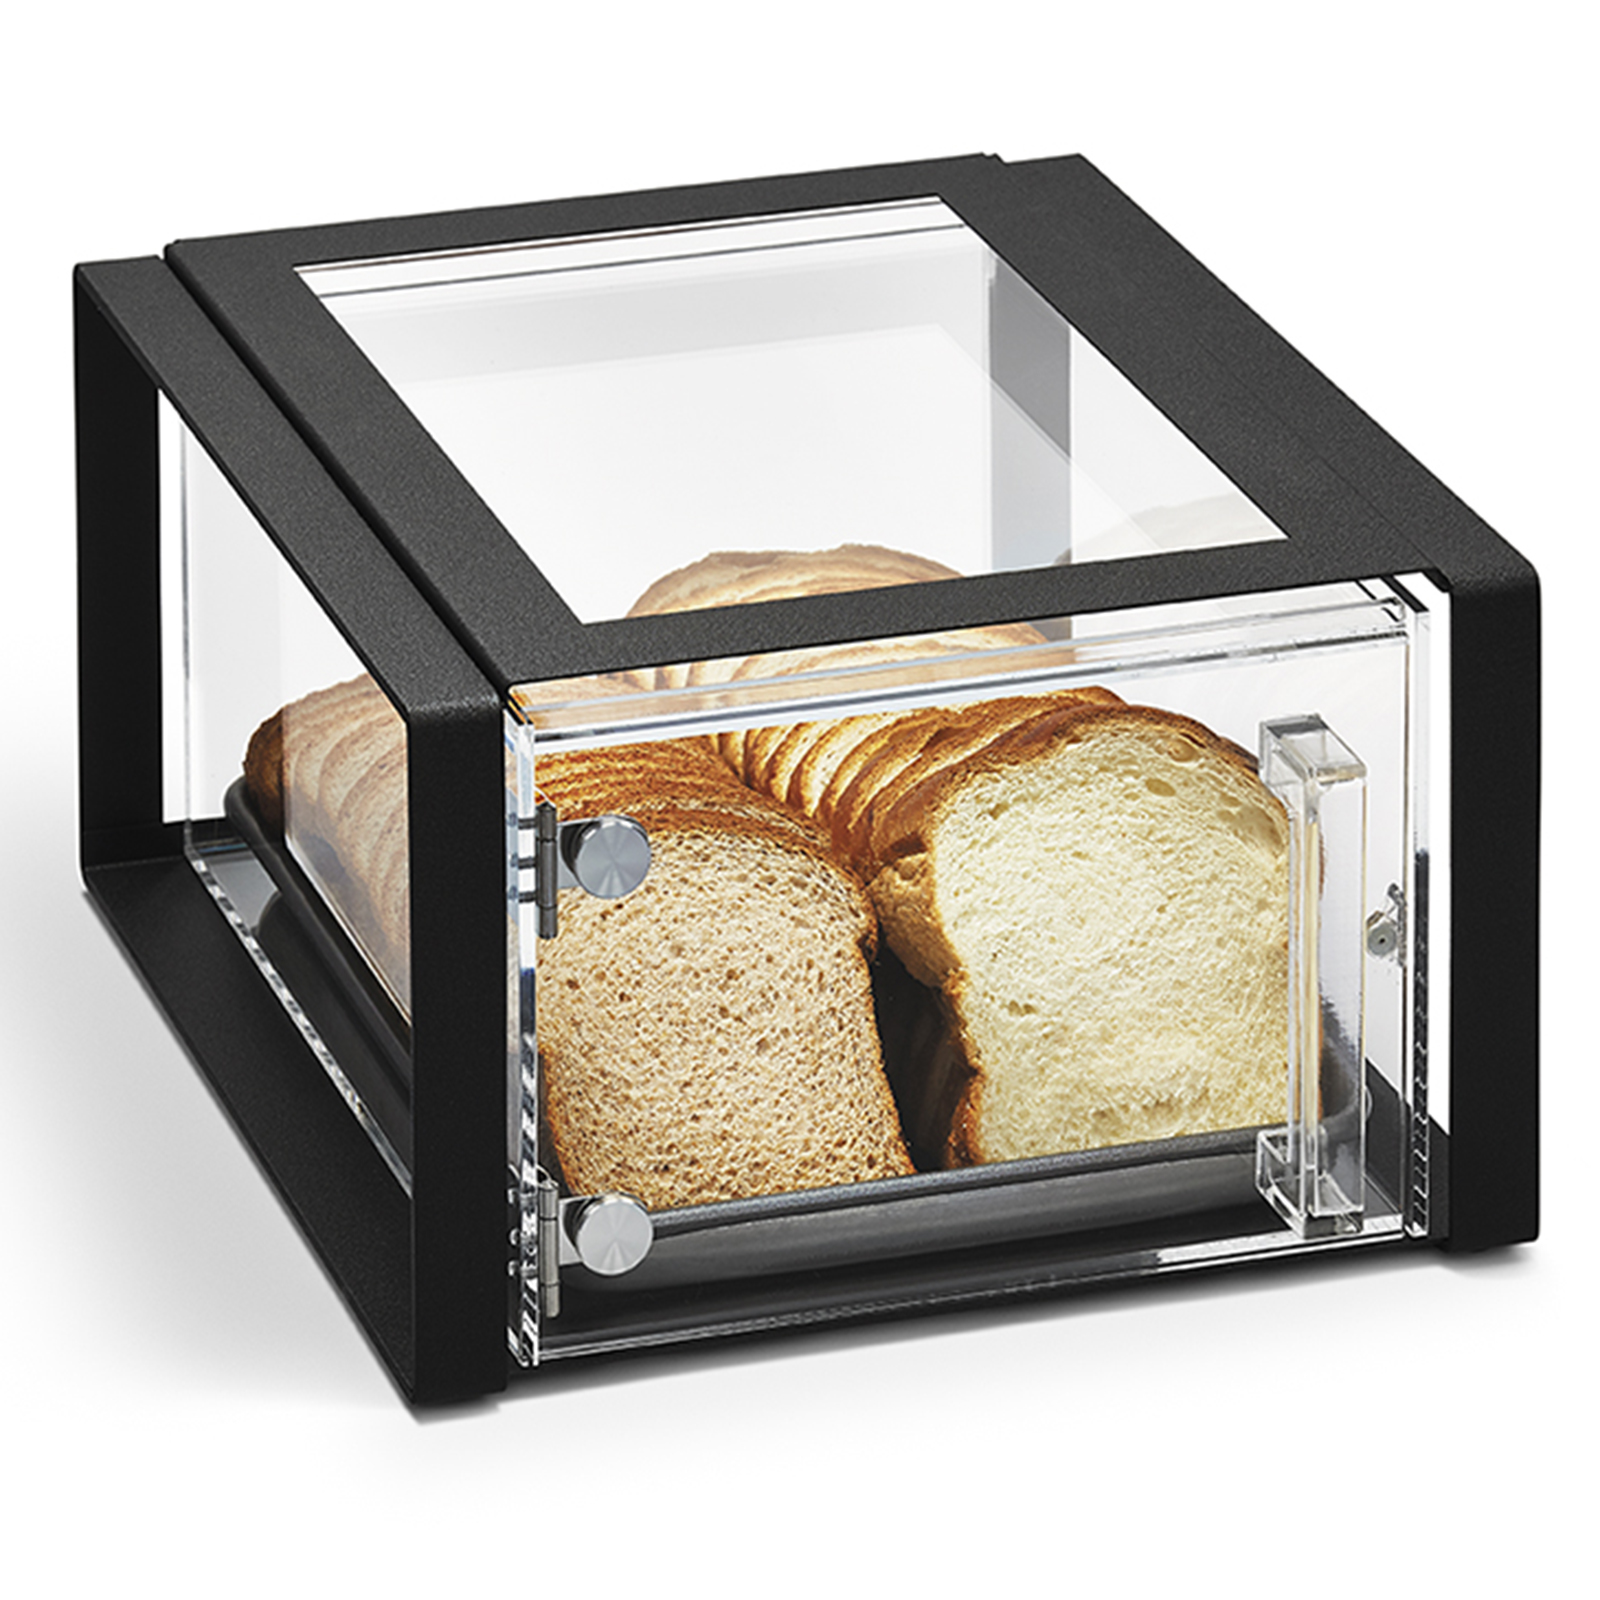 Vollrath SBC12F-06 display case, non-refrigerated countertop